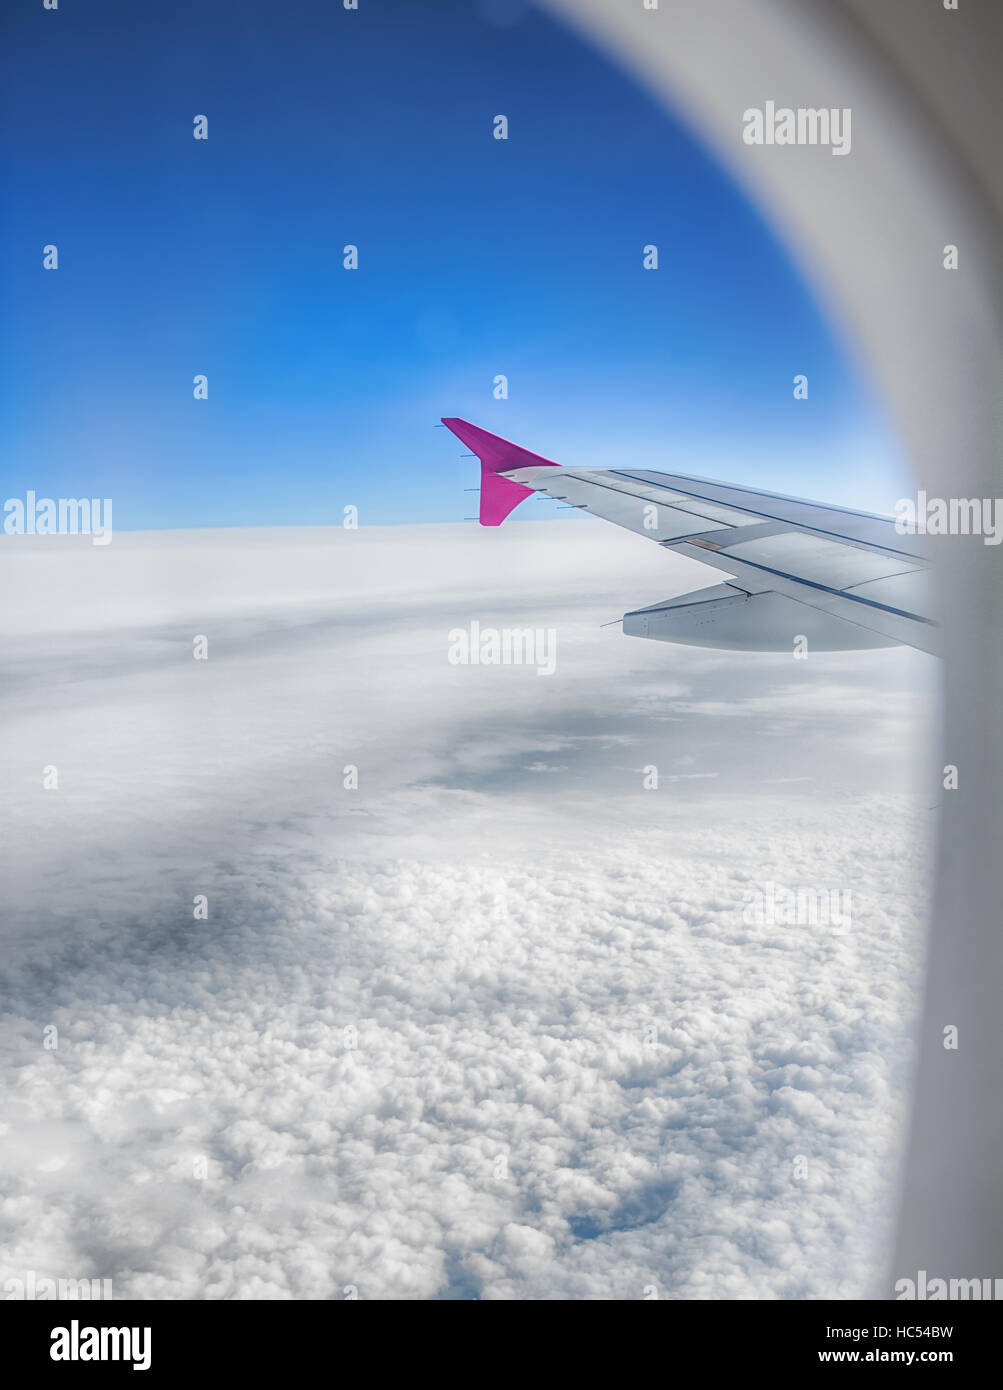 Airplane wing flying above sky and clouds through window aircraft. - Stock Image